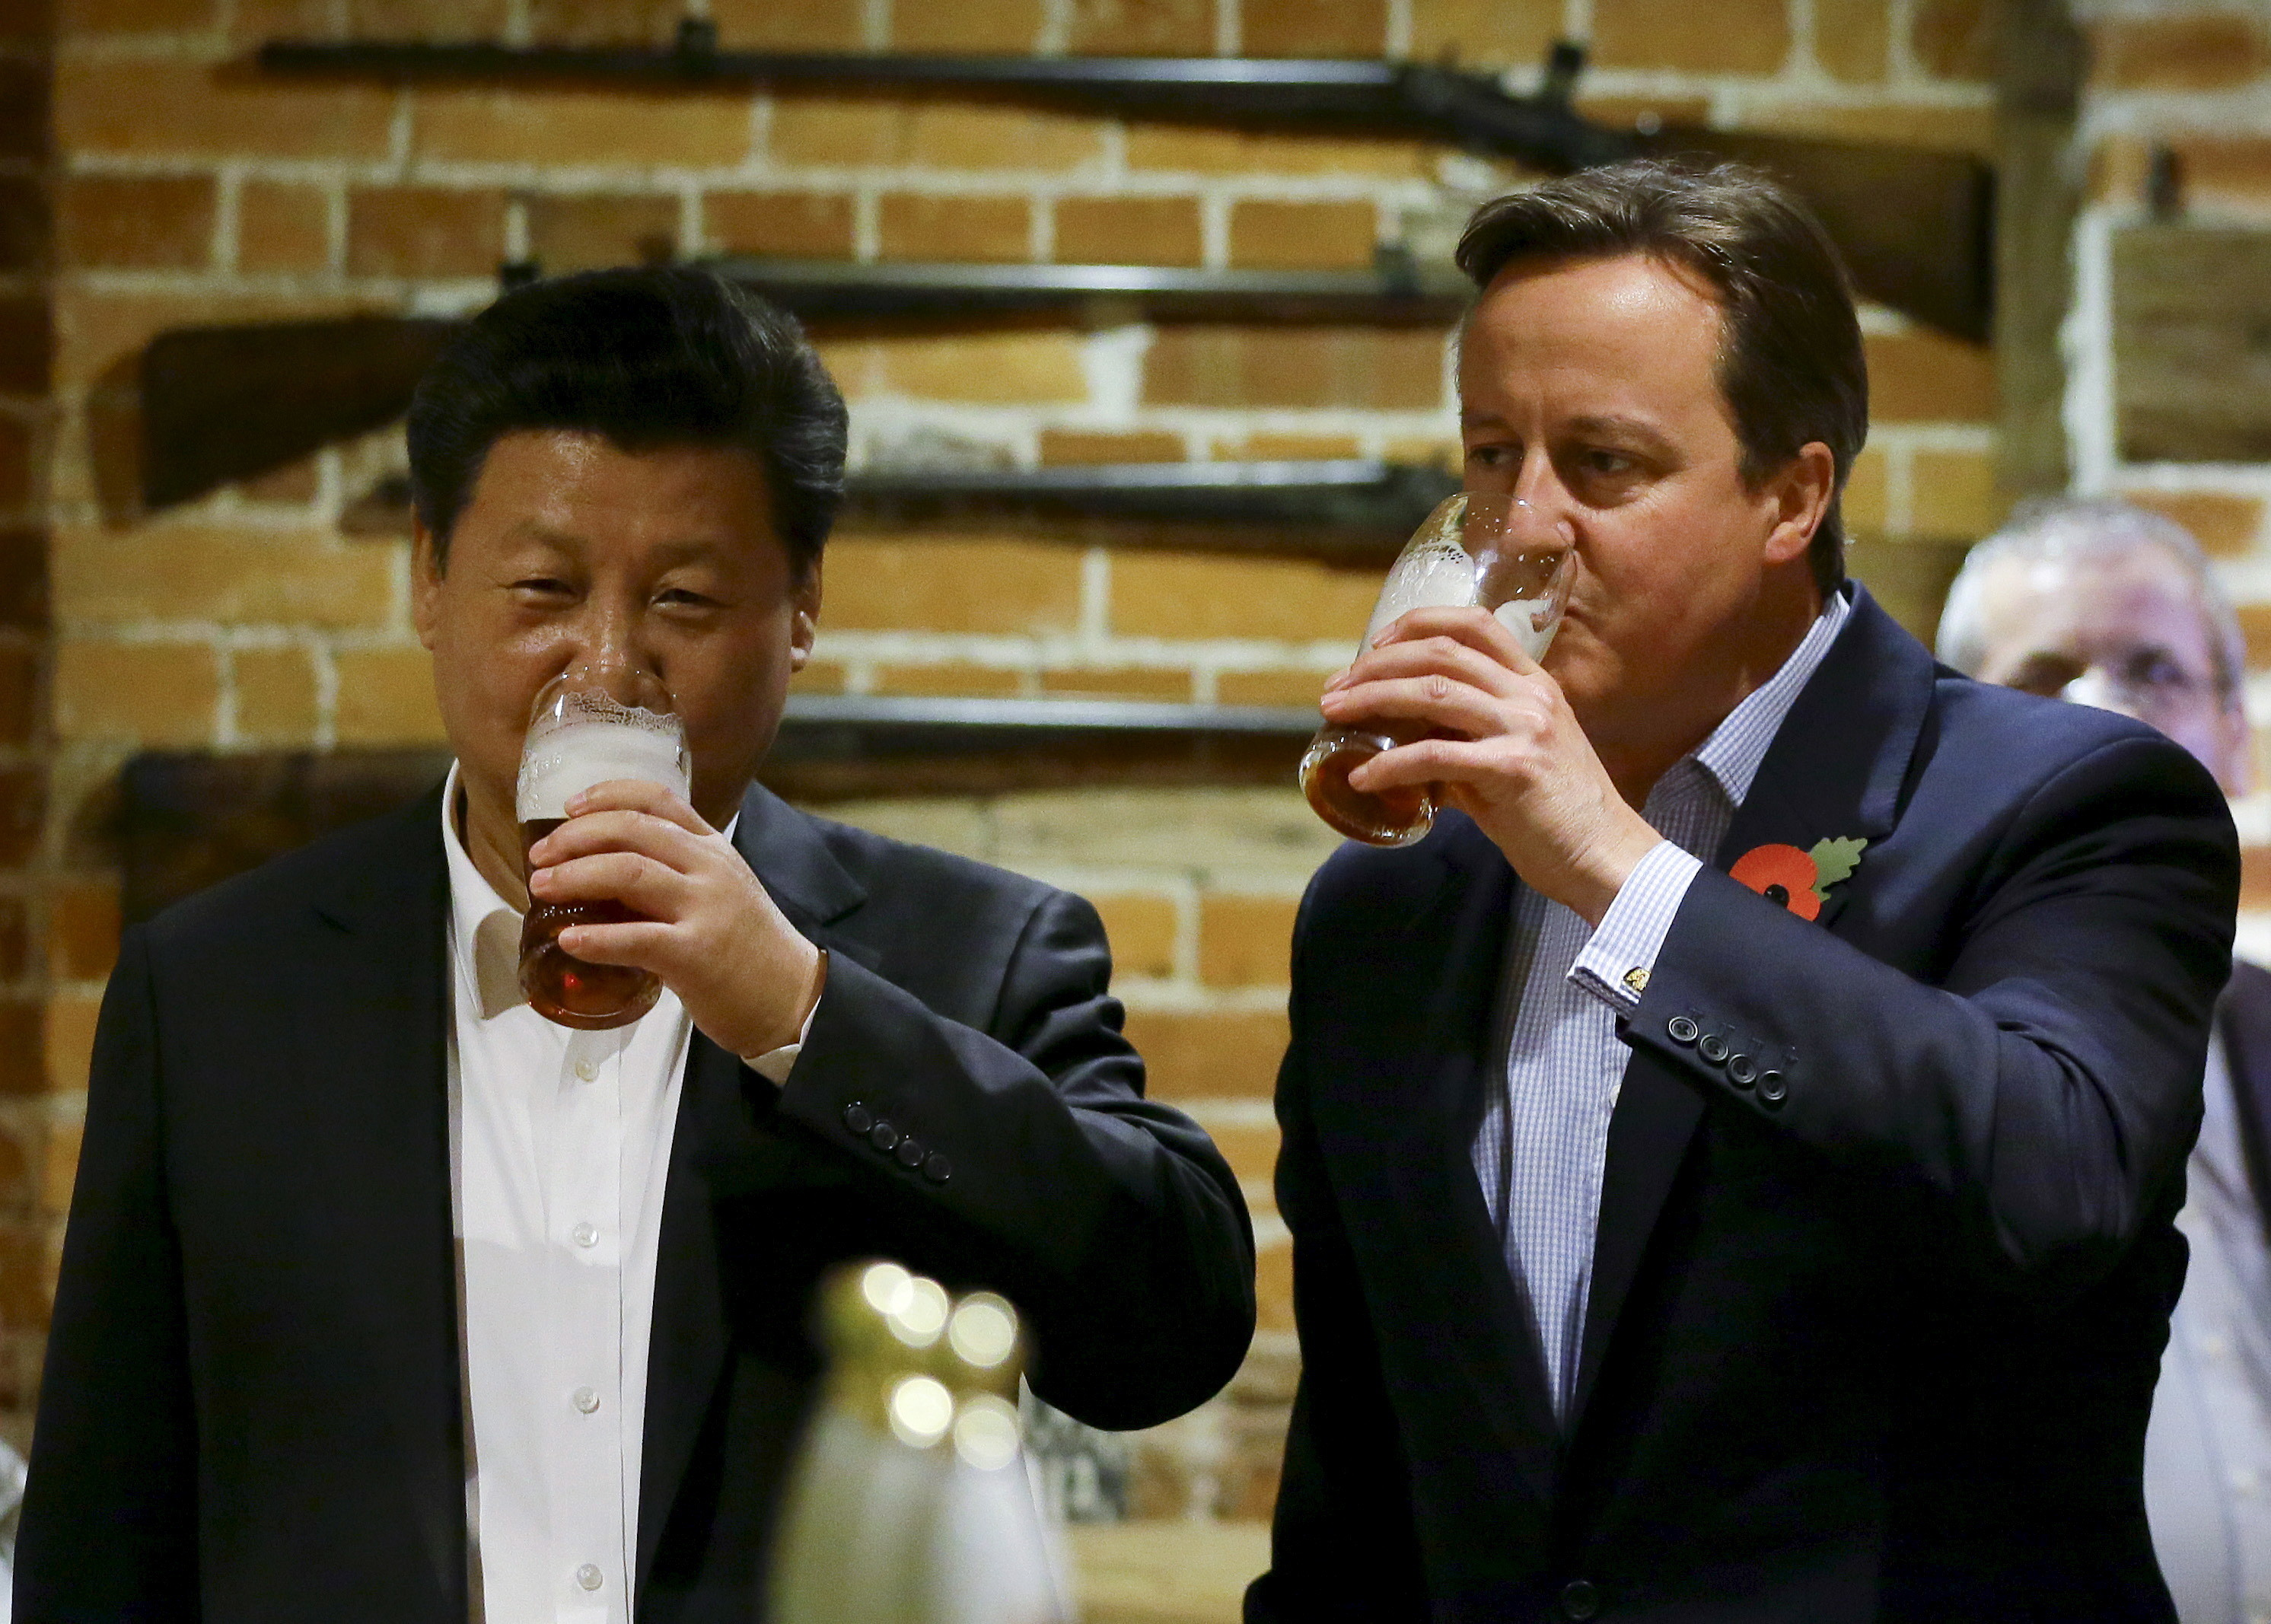 Britain's Prime Minister David Cameron (R) drinks beer with Chinese President Xi Jinping at a pub in Princes Risborough, near Chequers, England, October 22, 2015.  REUTERS/Kirsty Wigglesworth/Pool      TPX IMAGES OF THE DAY - GF20000028680